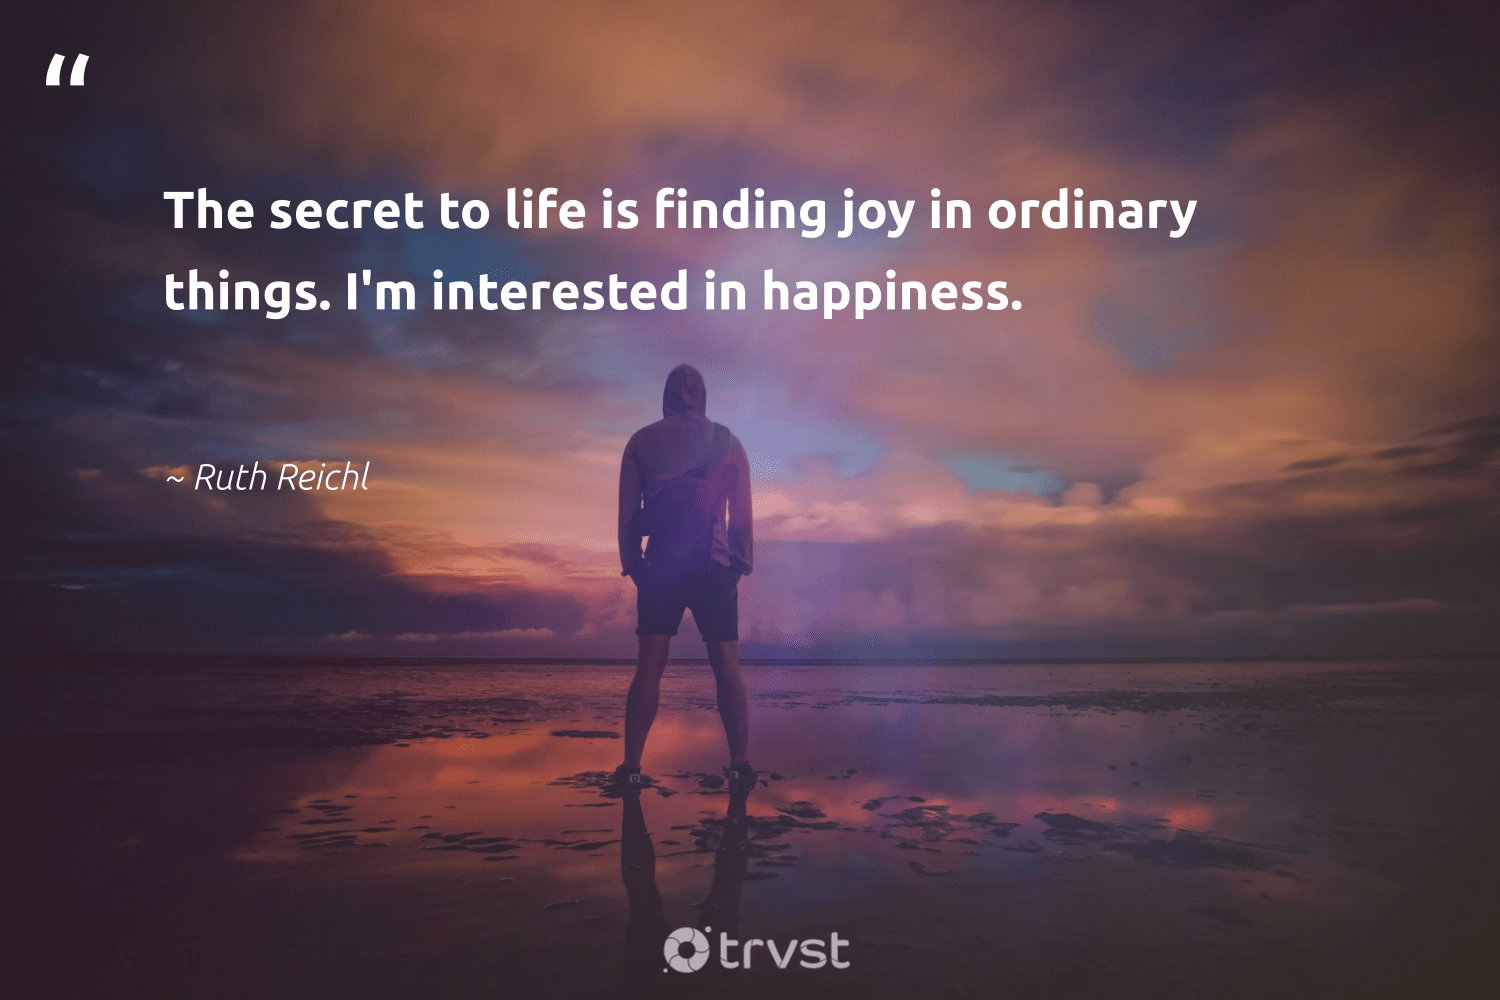 """""""The secret to life is finding joy in ordinary things. I'm interested in happiness.""""  - Ruth Reichl #trvst #quotes #happiness #begreat #bethechange #mindset #changetheworld #togetherwecan #beinspired #health #collectiveaction #nevergiveup"""